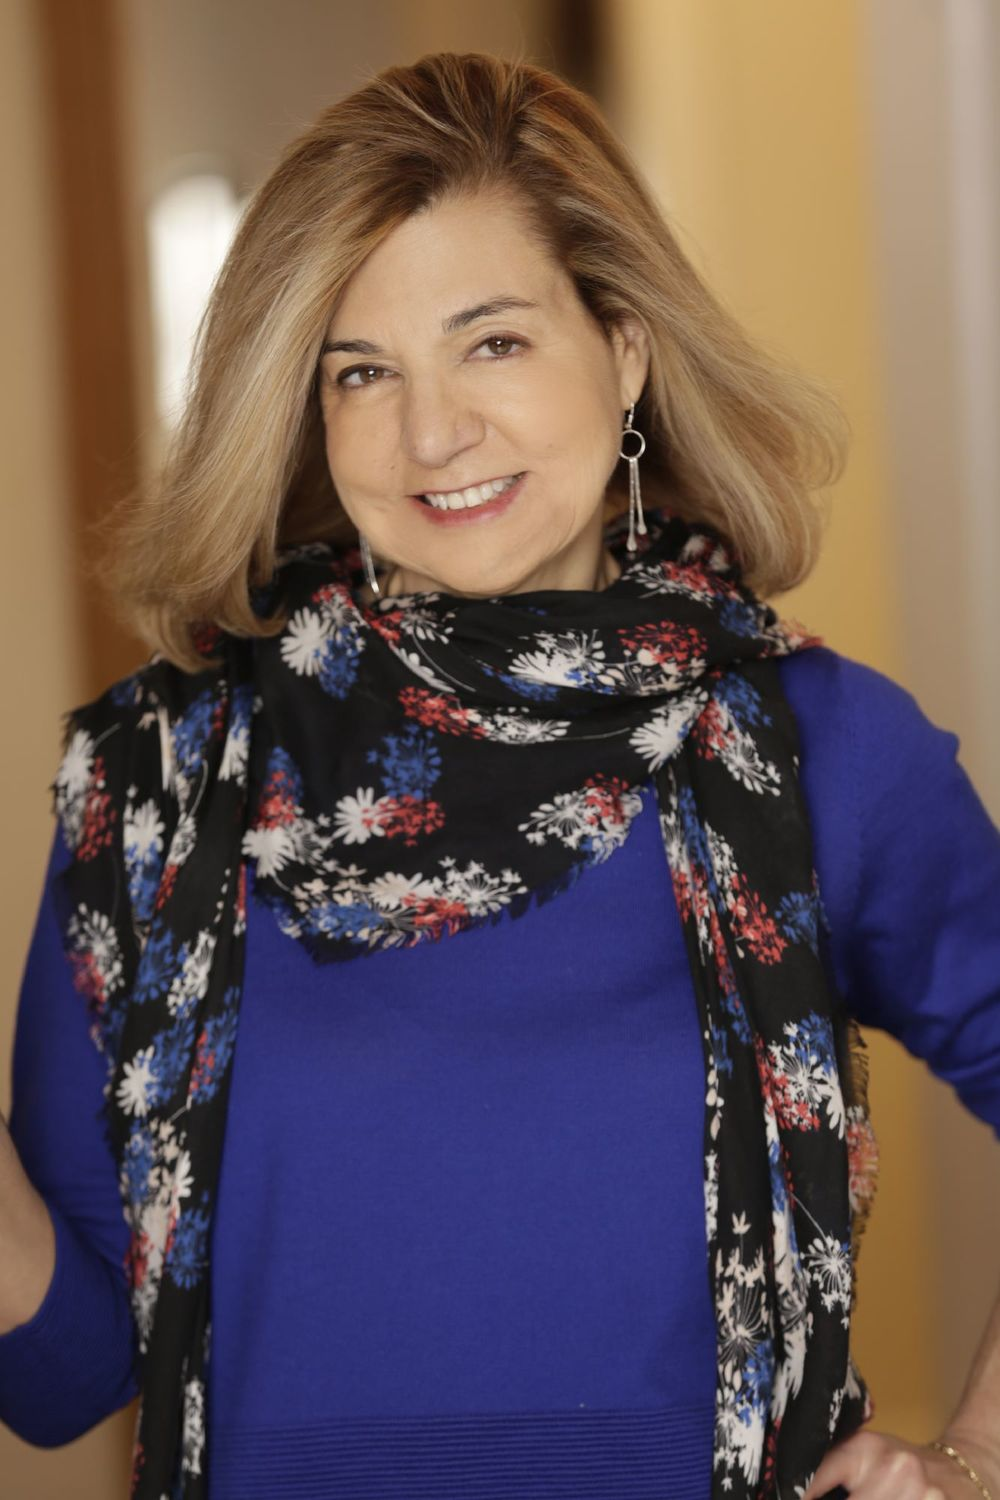 margaret-sullivan-corporate-headshots-nyc-media-editor-new-york-times.JPG